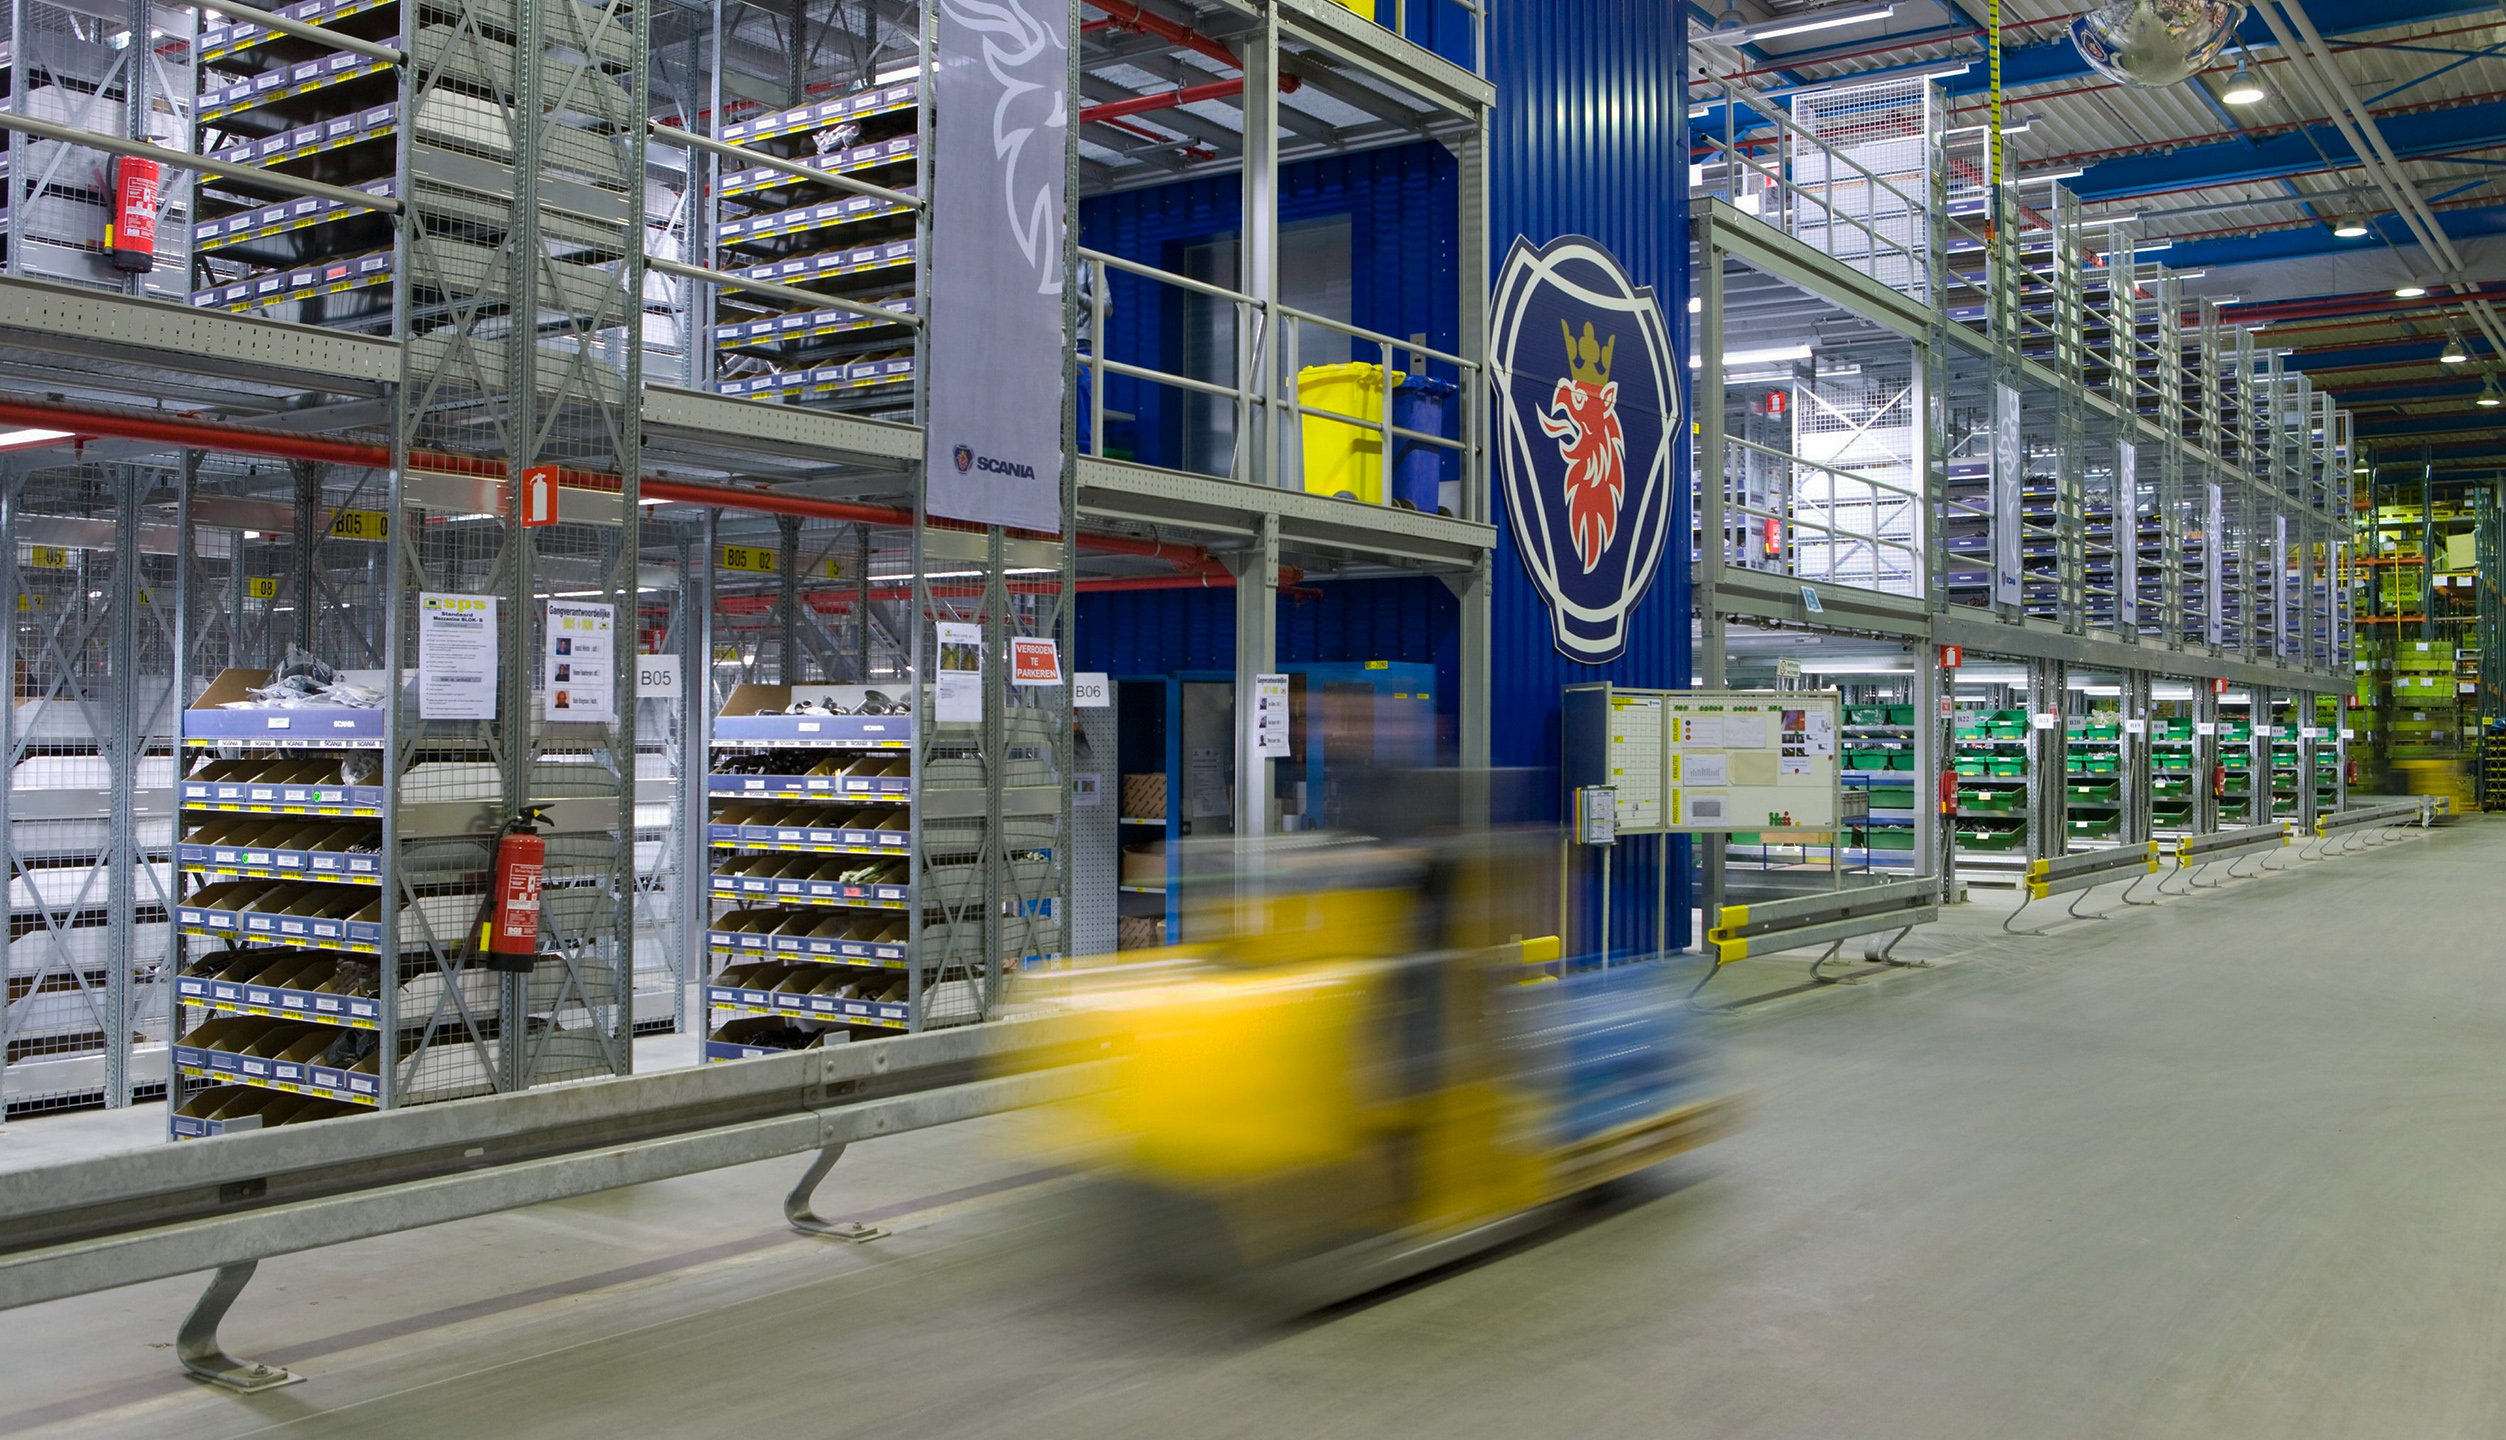 A Scania parts warehouse containing truck parts, bus parts and engine parts